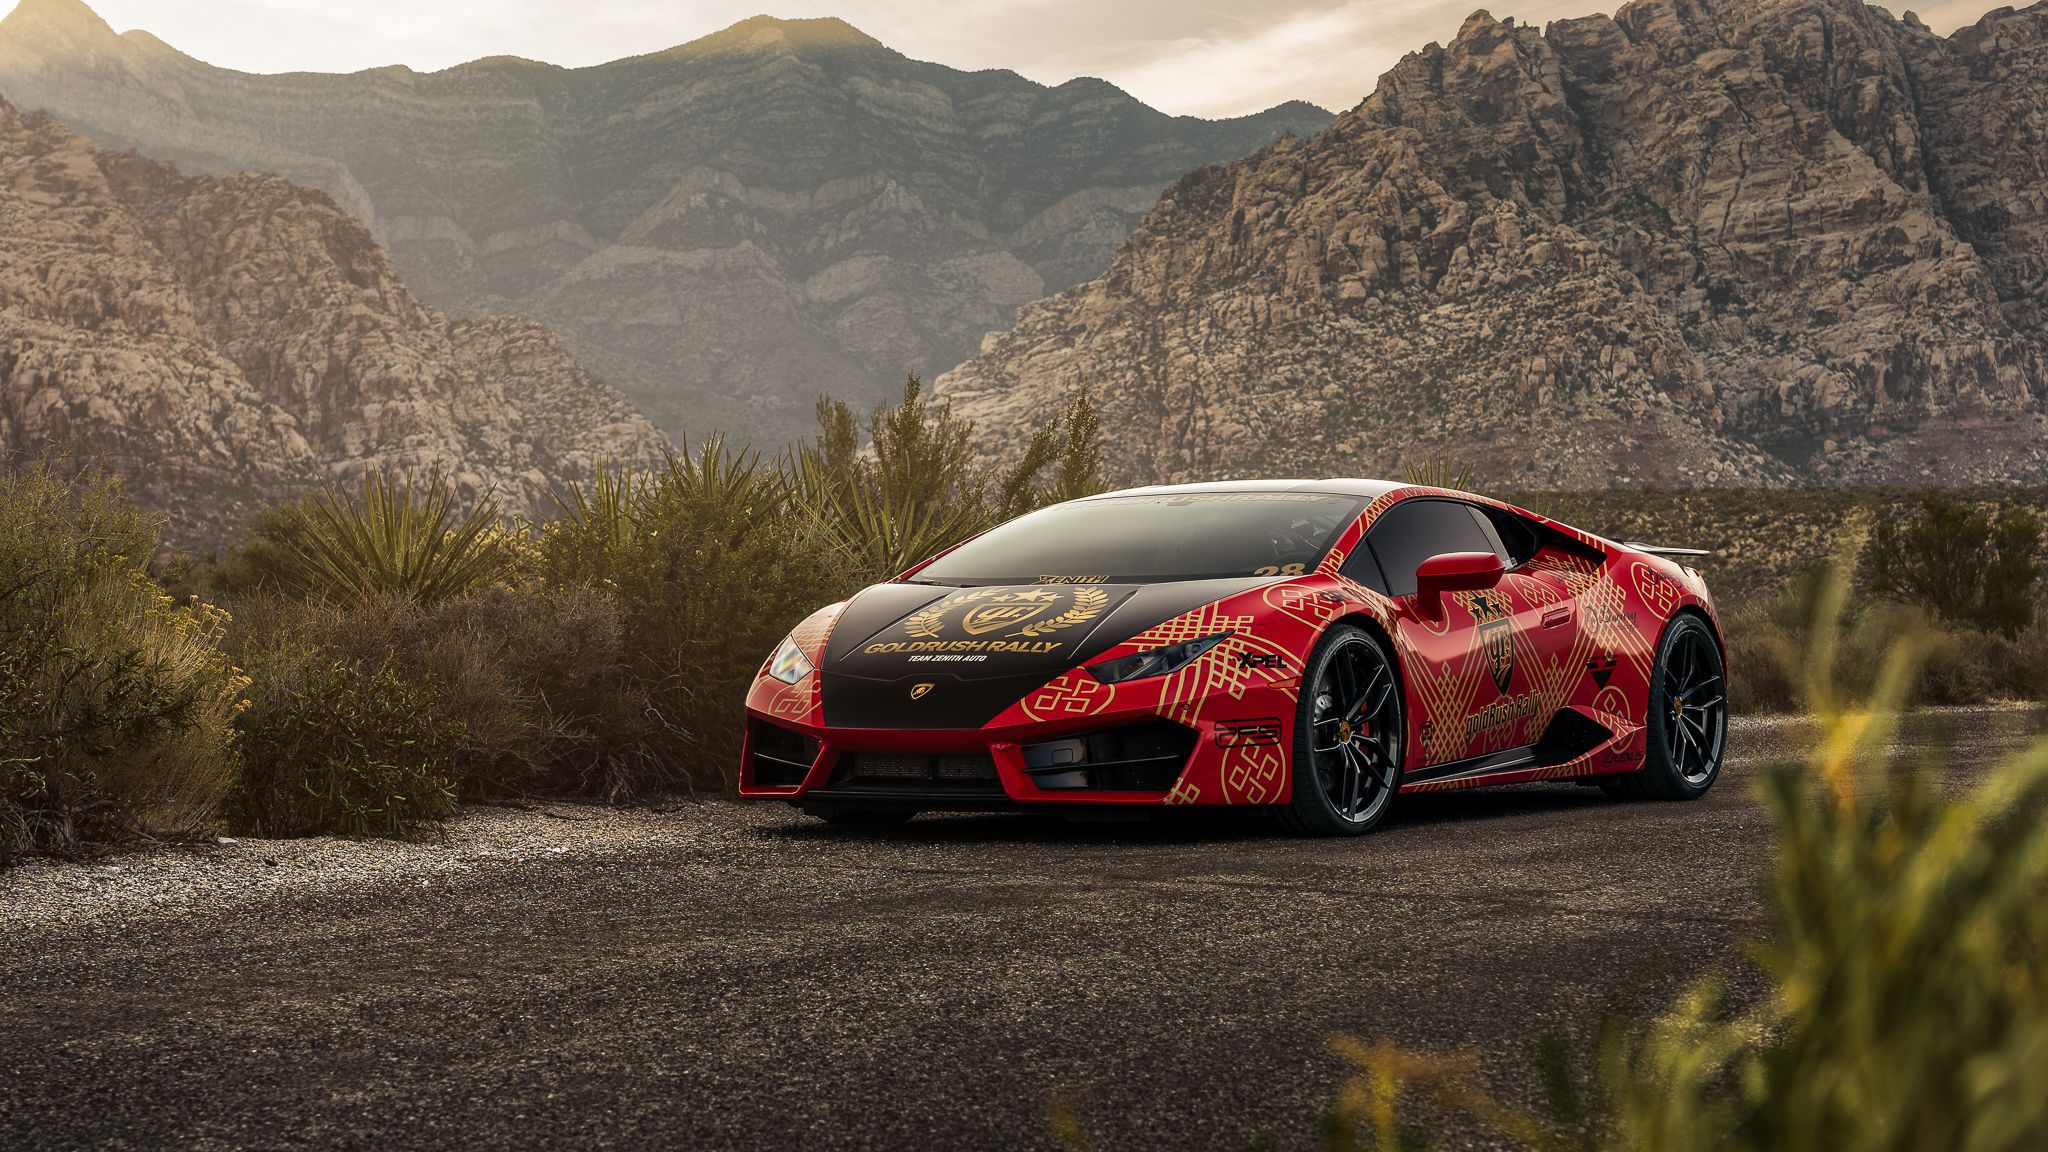 Race Car Wallpaper Images 2018 Lamborghini Huracan Lp 610 4 Goldrush Rally